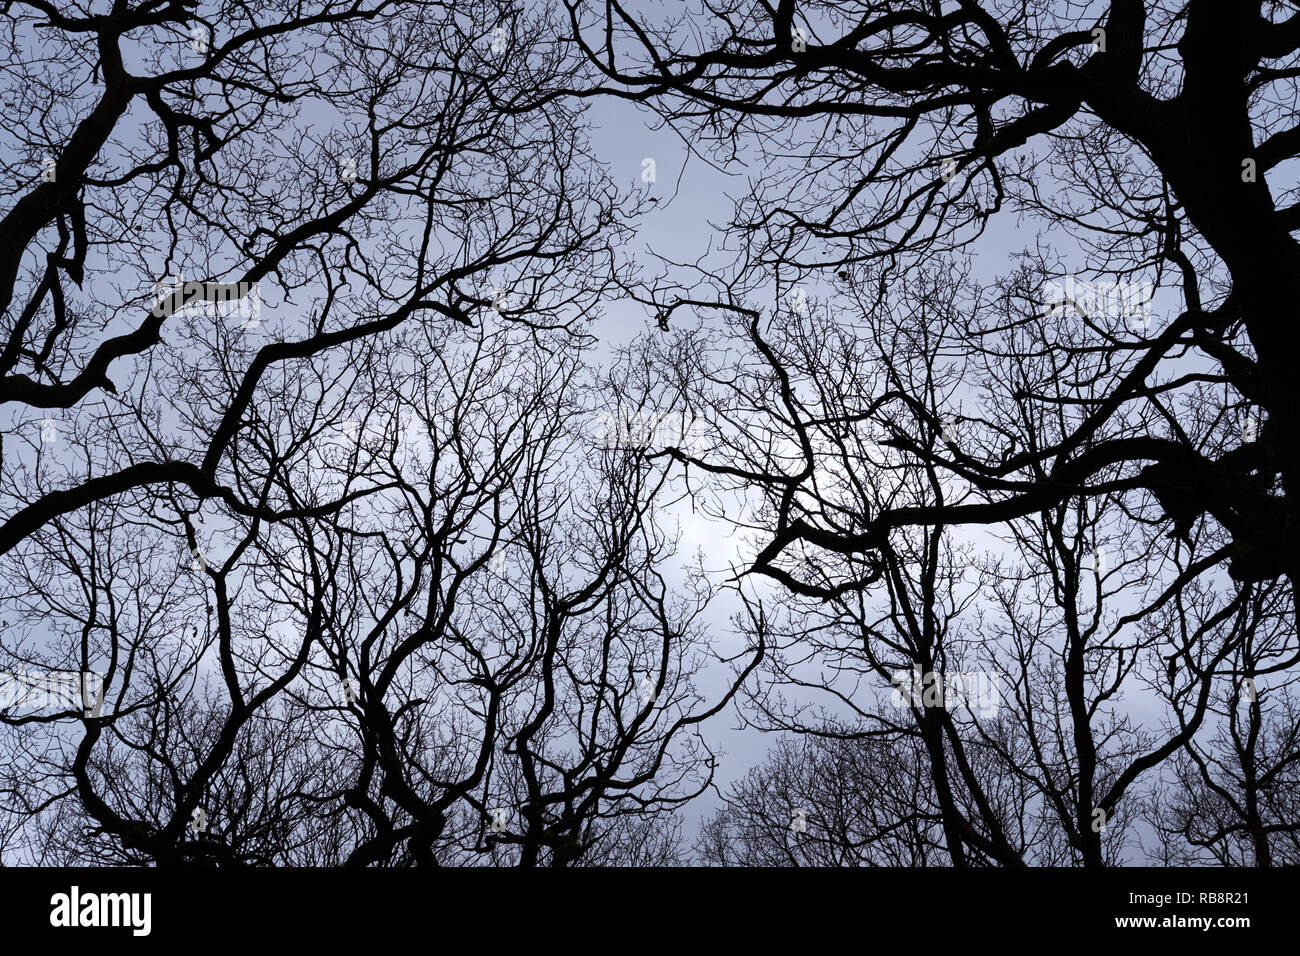 Bare trees in winter silhouetted against a grey sky - Stock Image